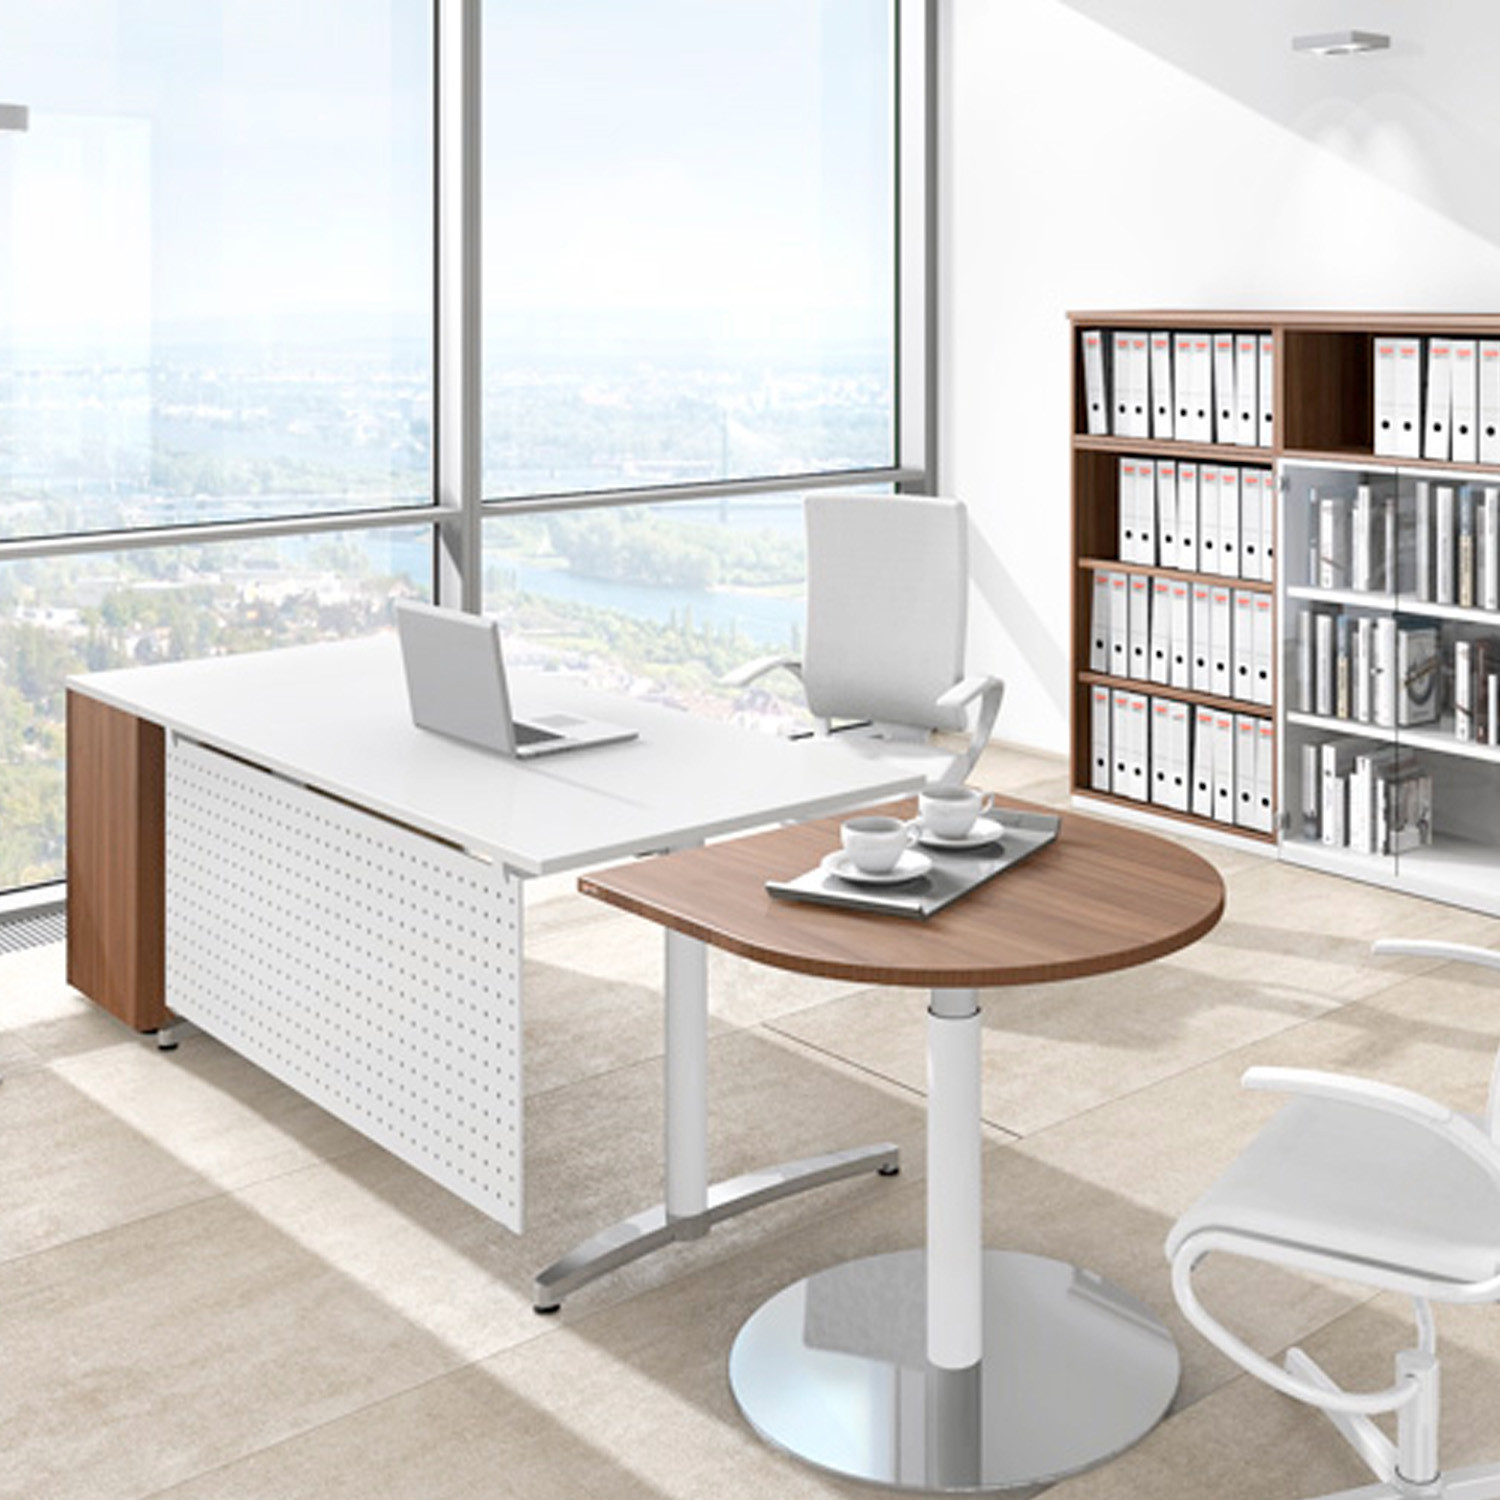 Canvaro Modular Office Desk